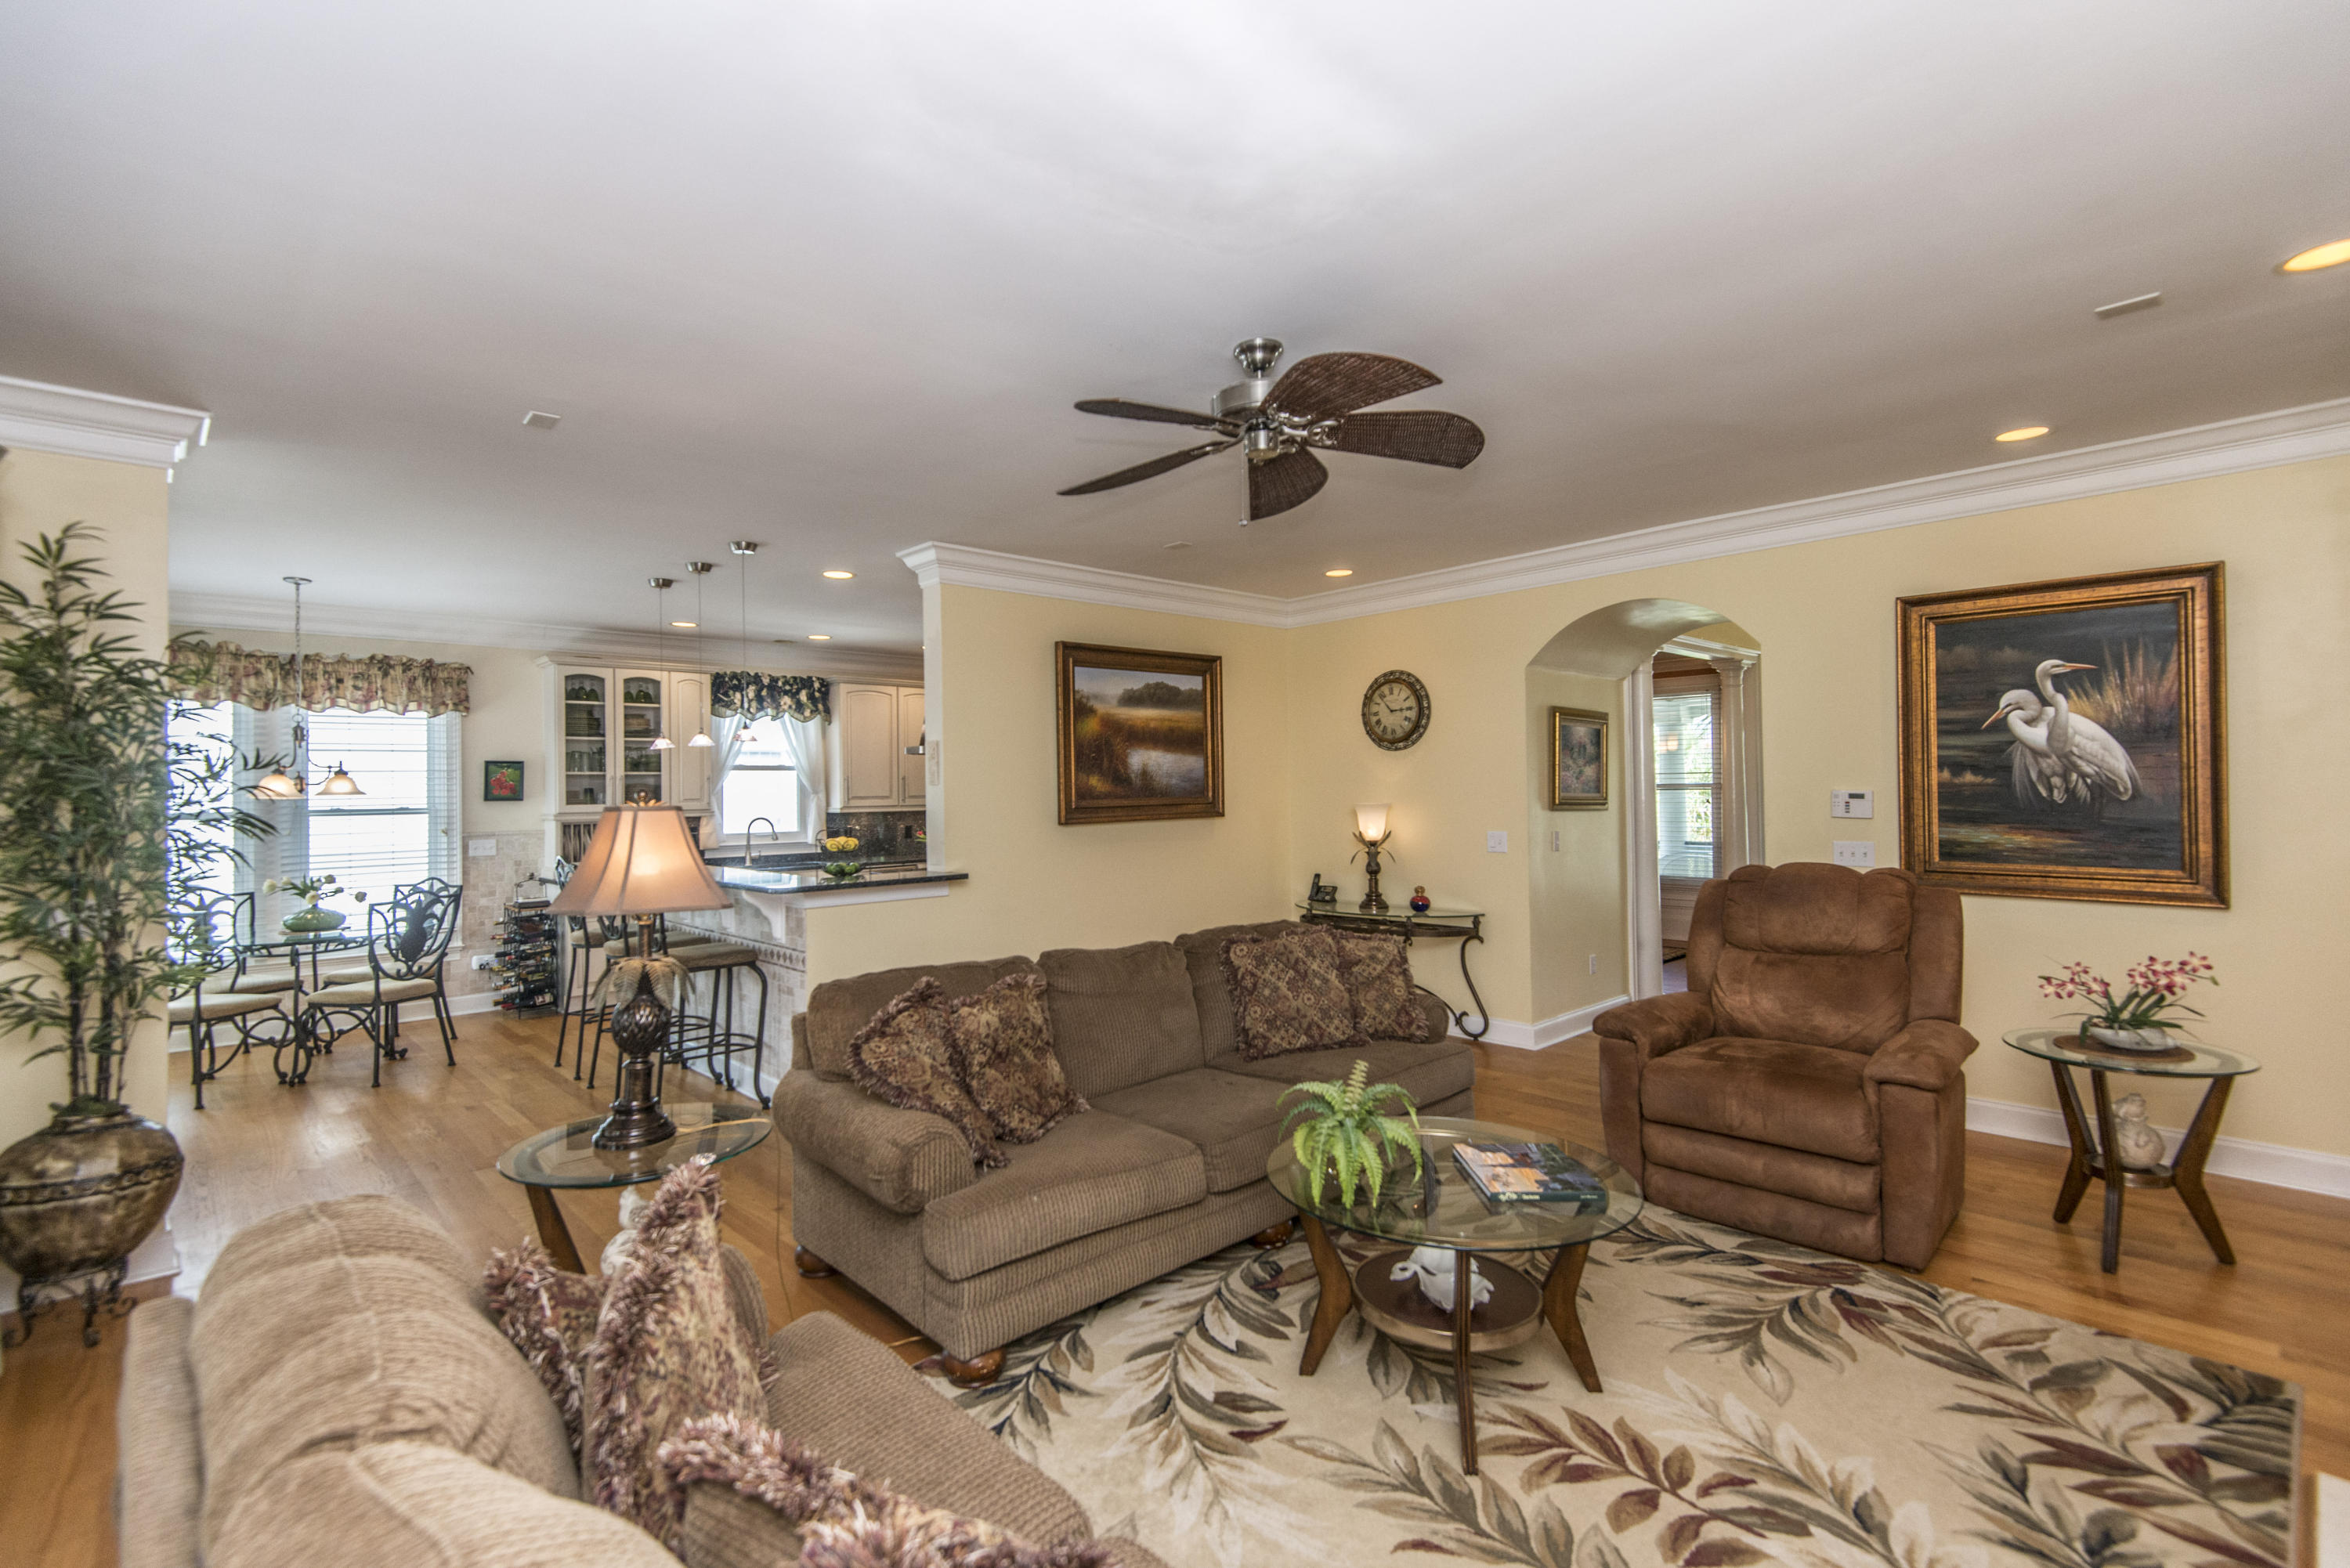 Rivertowne On The Wando Homes For Sale - 2006 Shields, Mount Pleasant, SC - 22